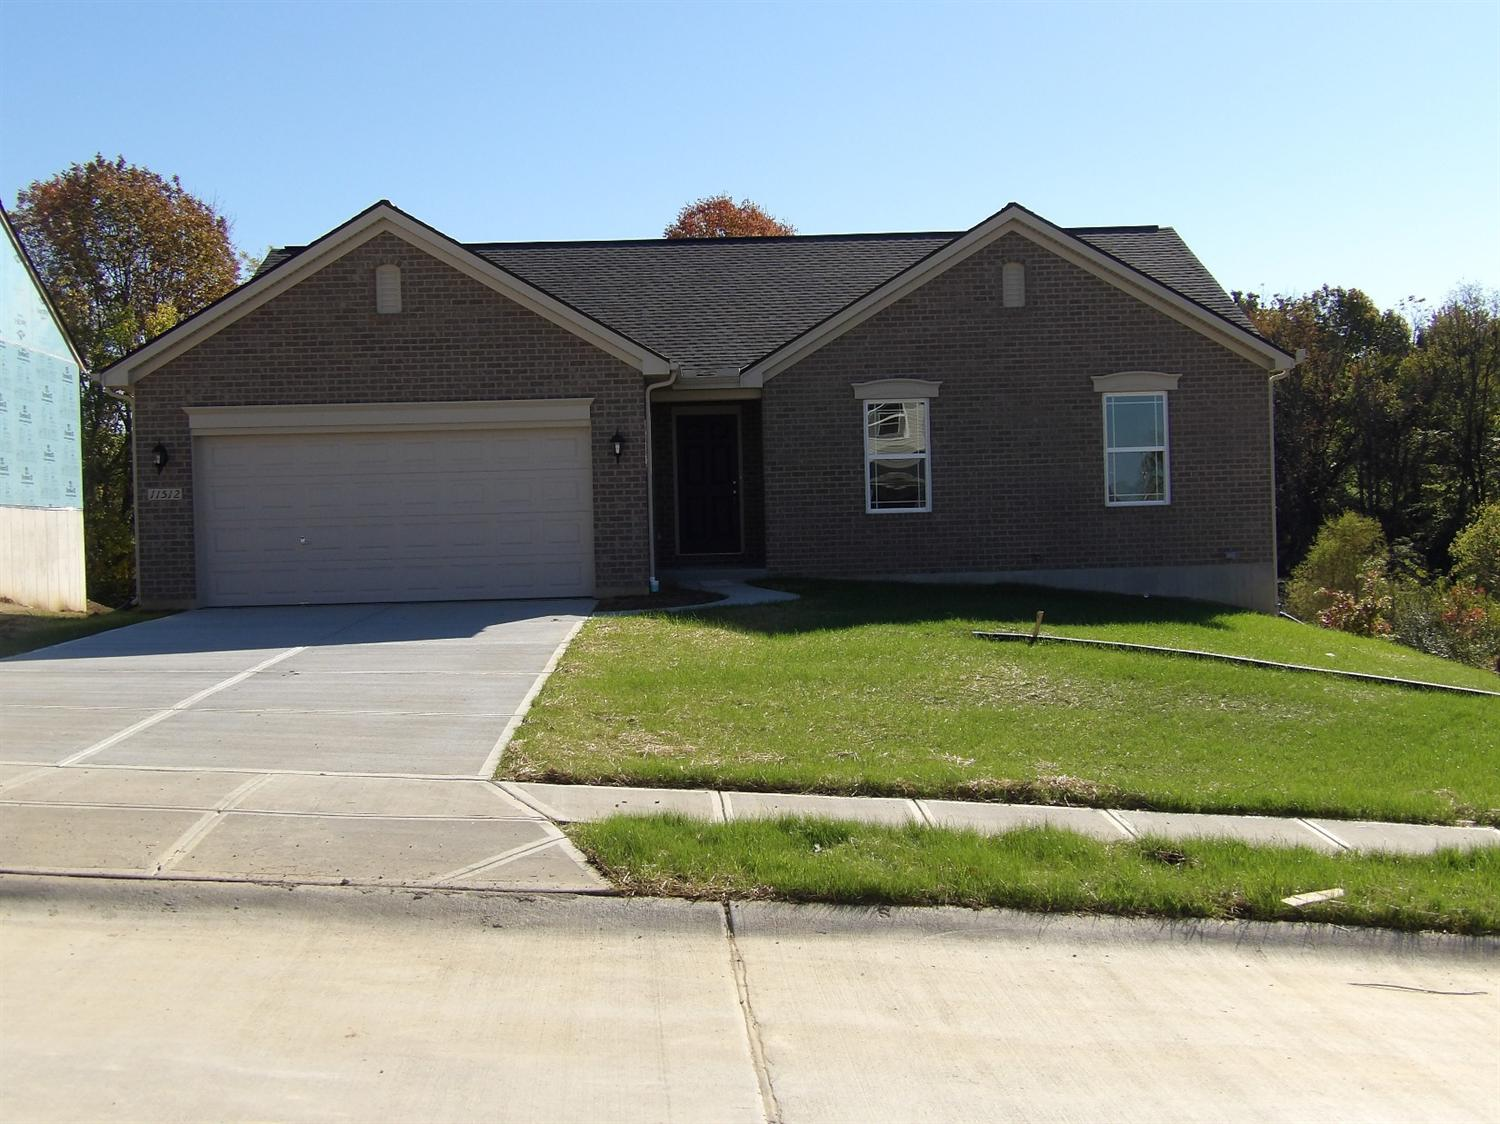 Photo 1 for 11512 Ridgetop Dr, 10RT Walton, KY 41094